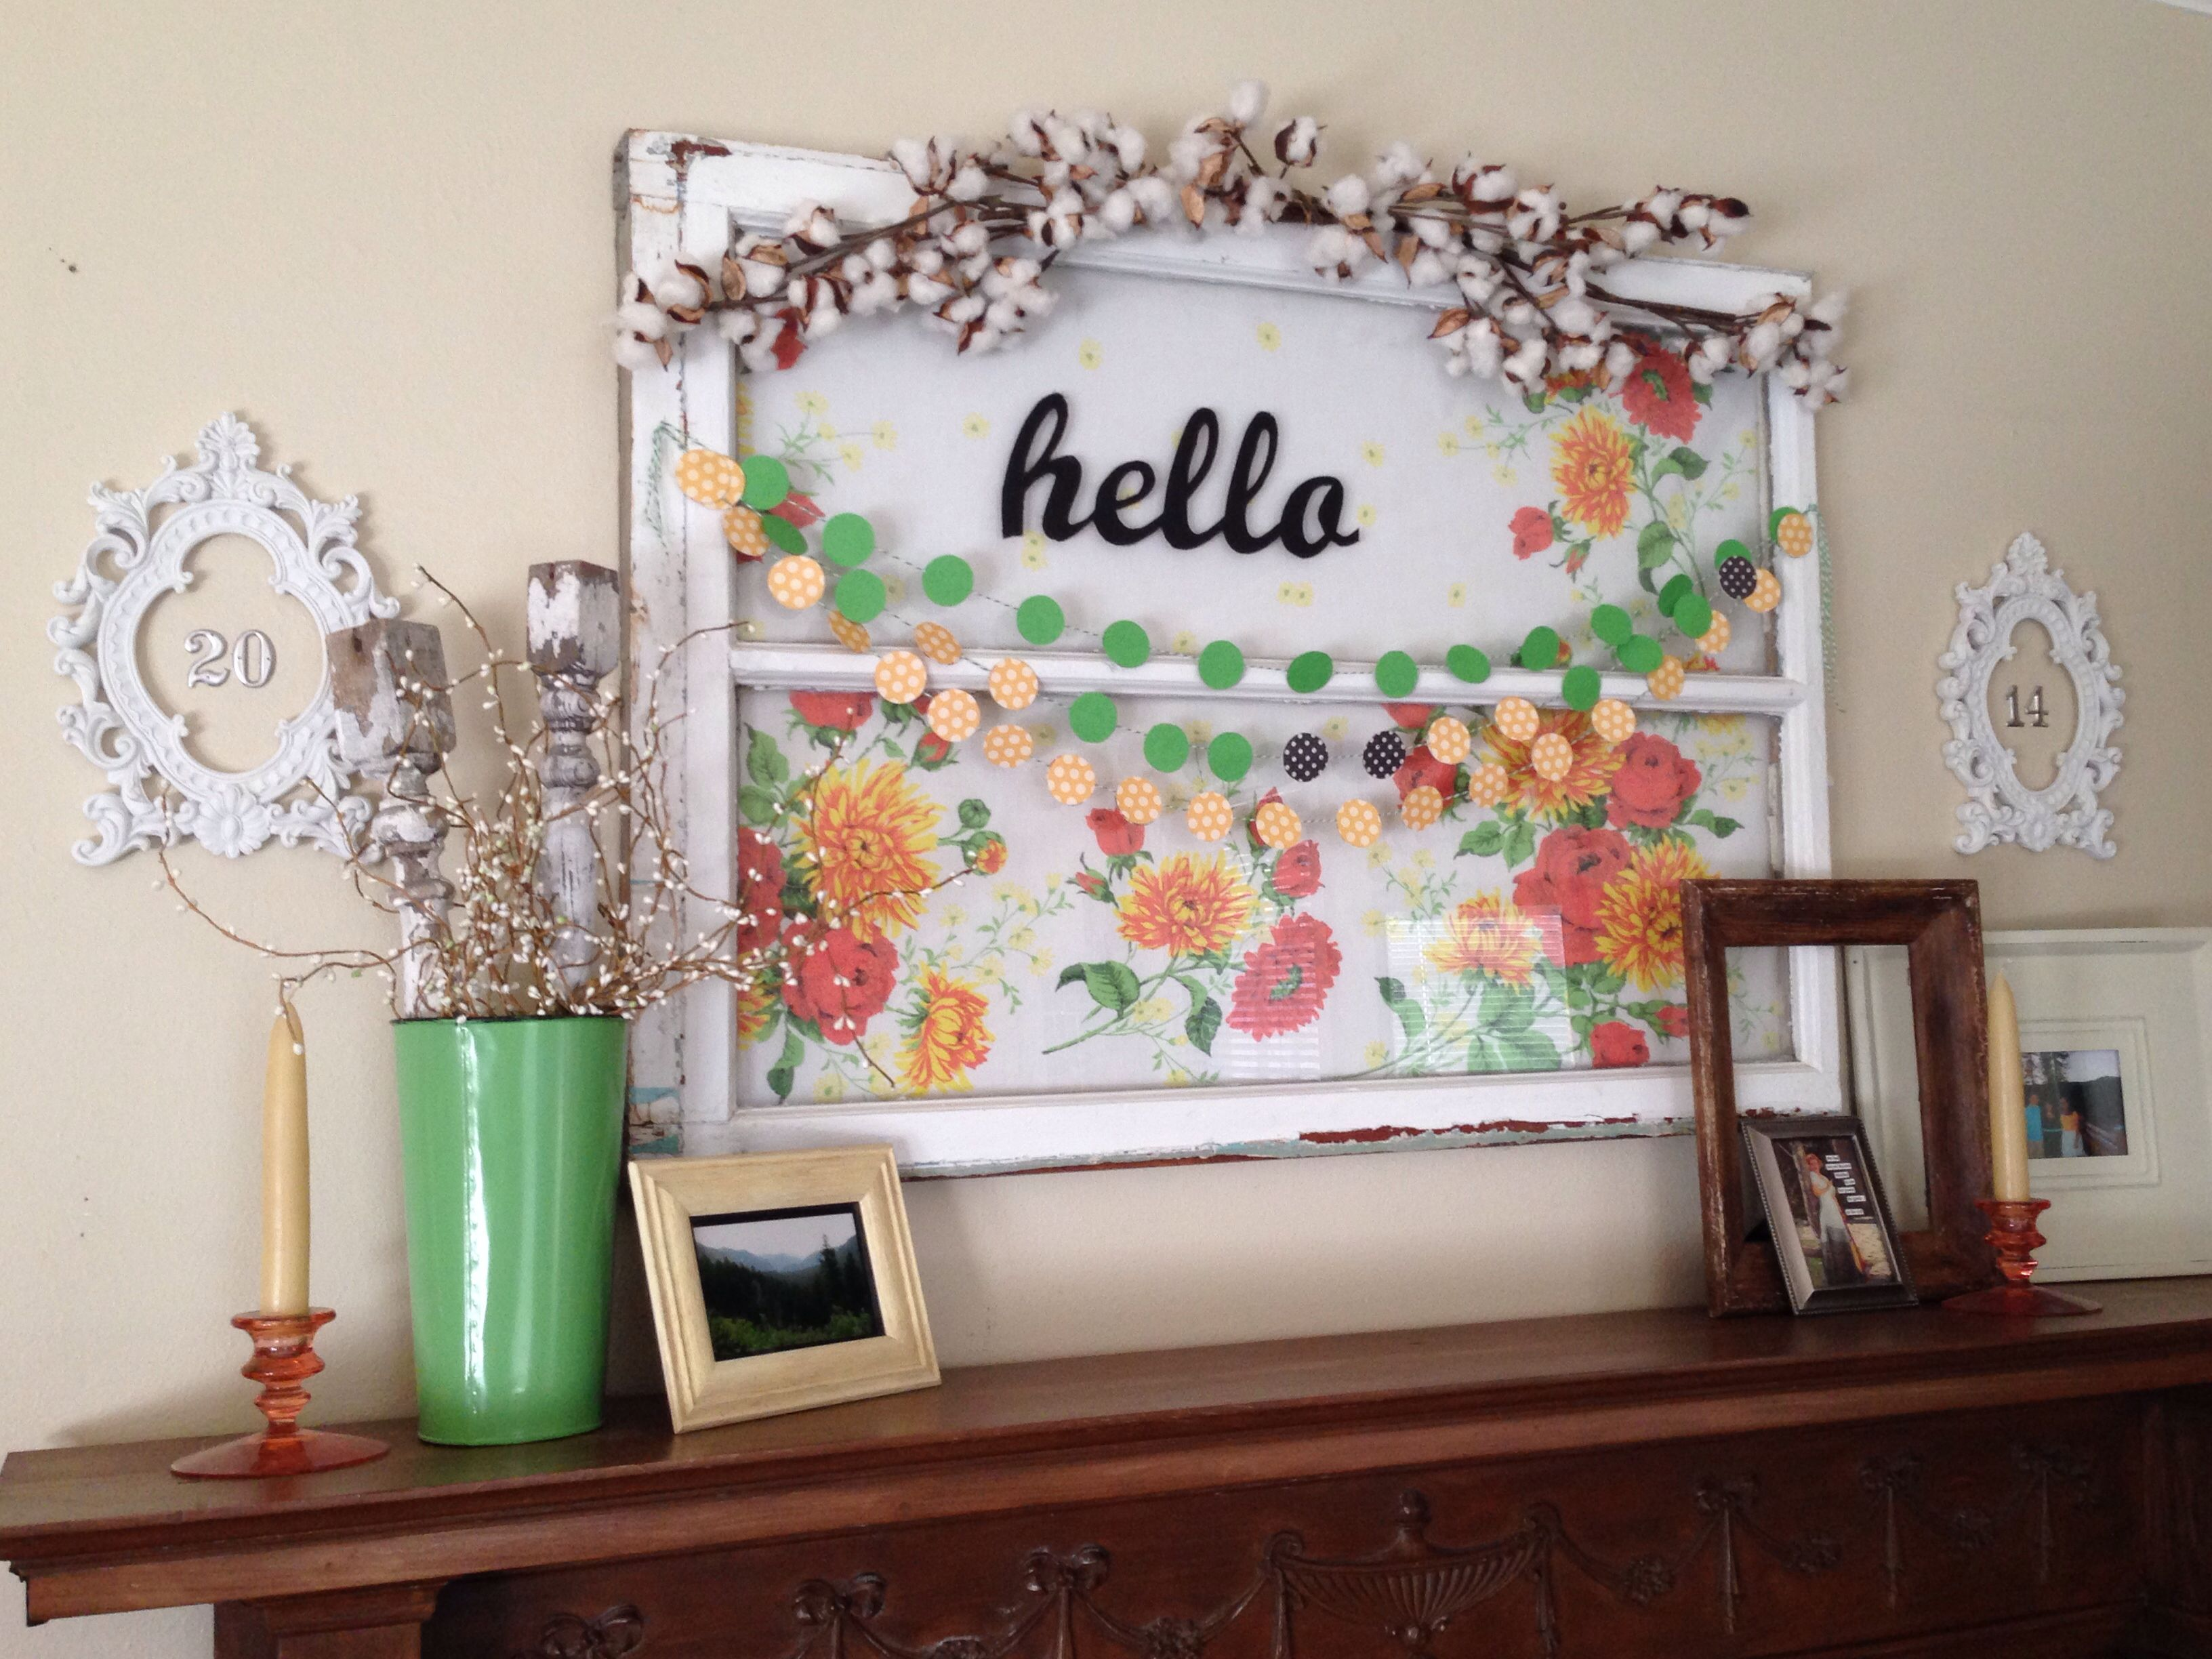 Mantel decor hello casa rosa pinterest for Casa mantel